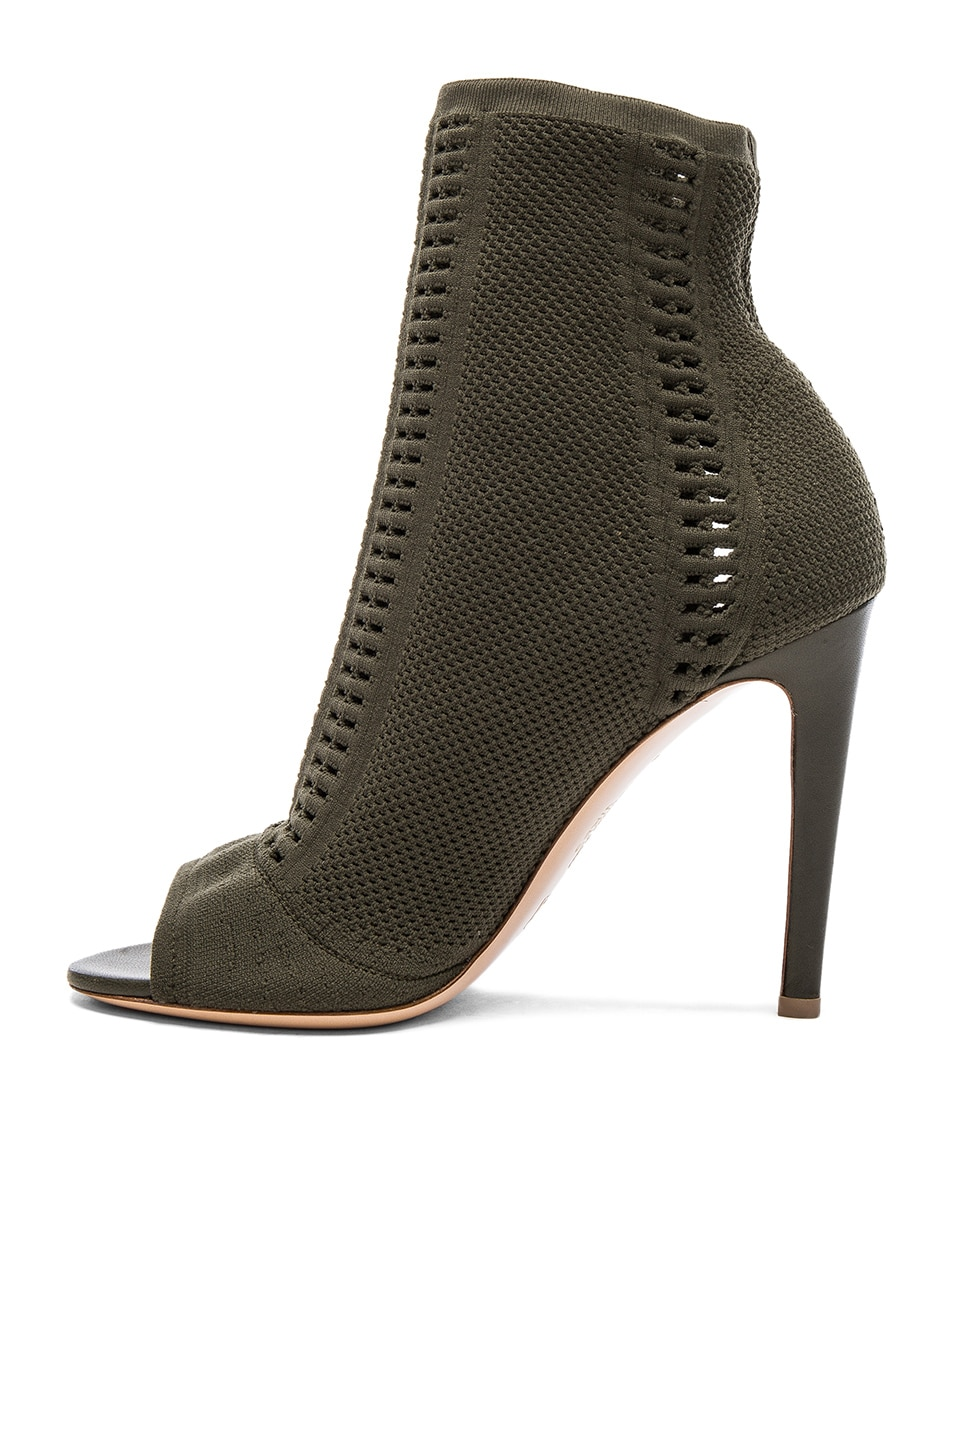 Image 5 of Gianvito Rossi Knit Vires Booties in Army